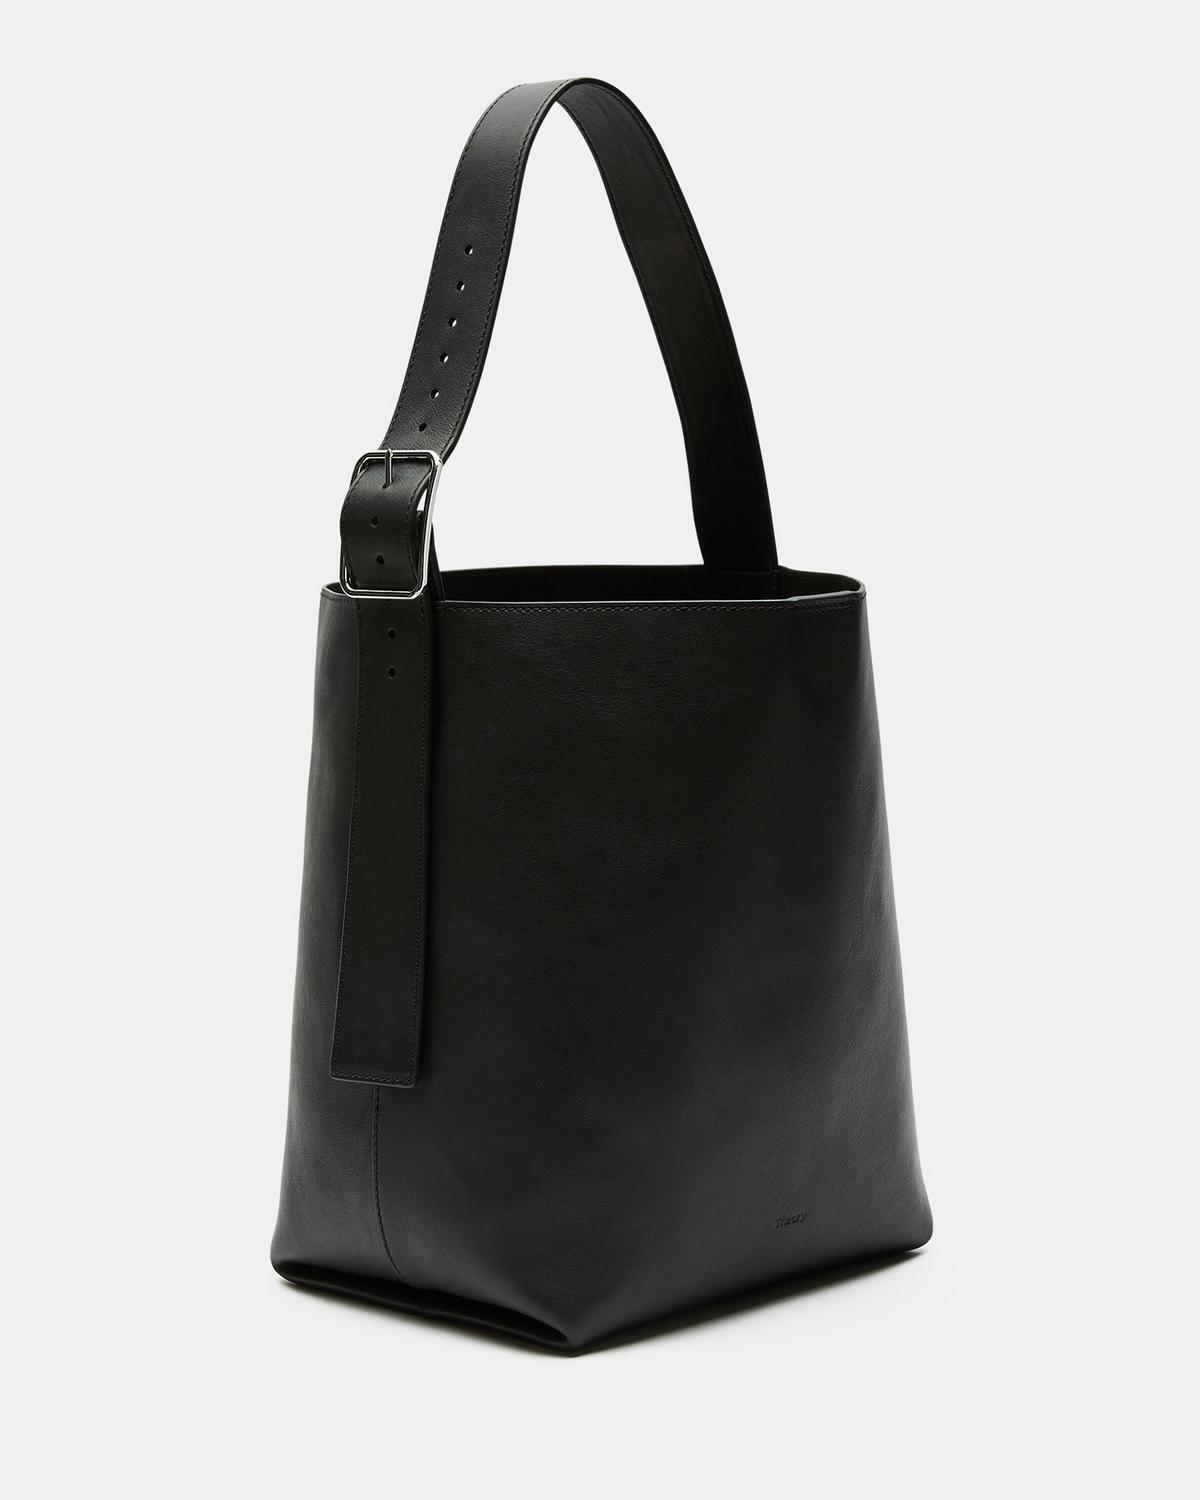 84e0263c297 Hobo Bag in Soft Leather 1 - click to view larger image ...